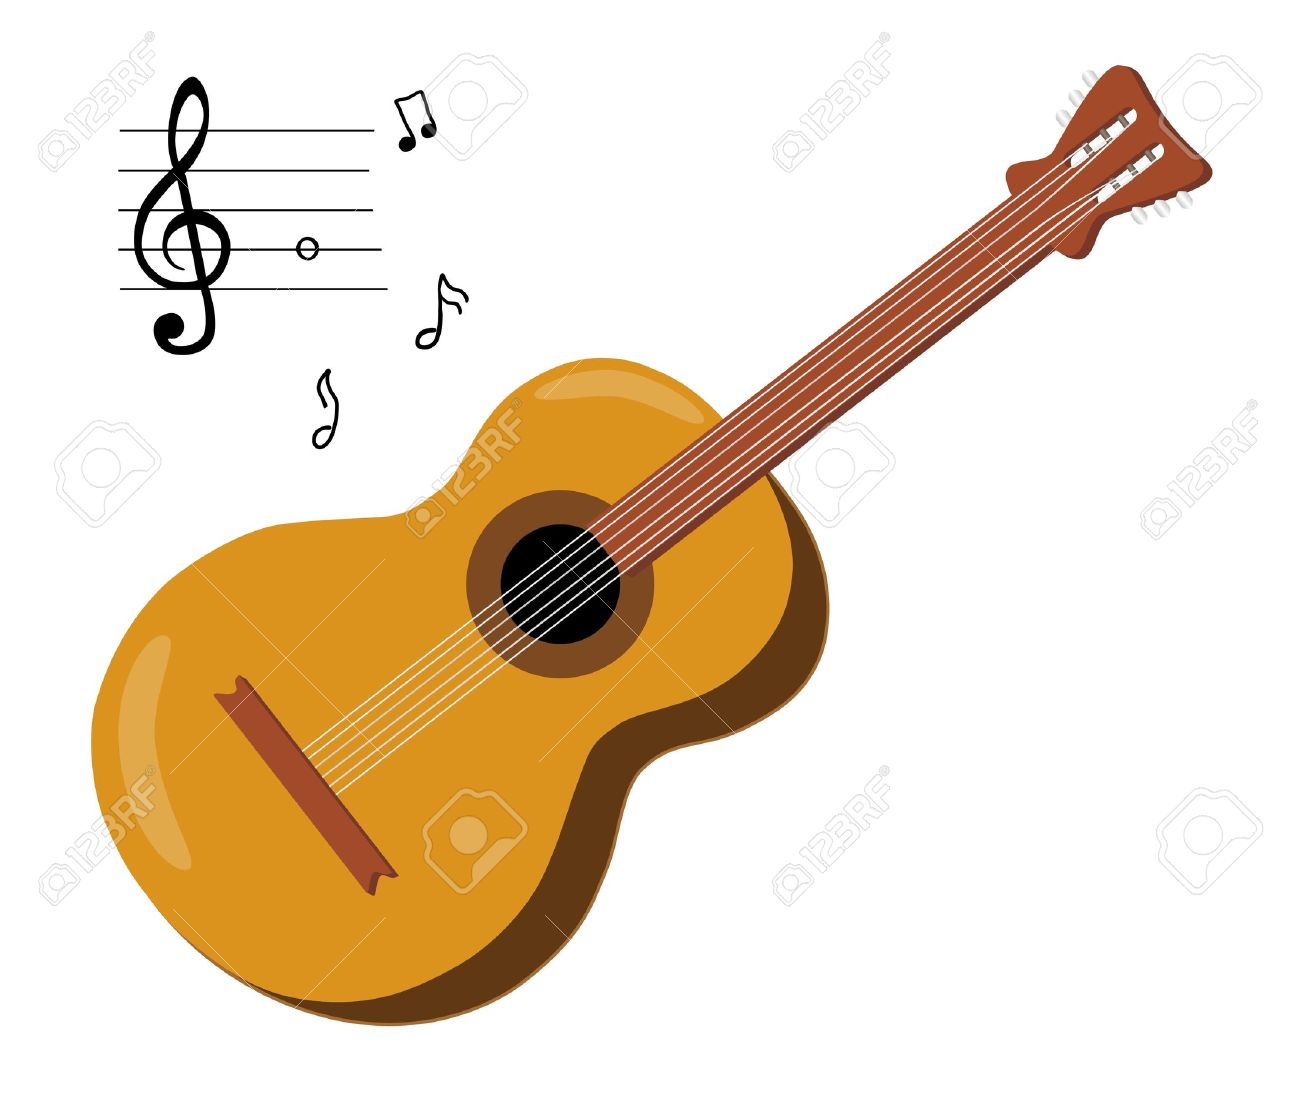 64 278 guitar cliparts stock vector and royalty free guitar rh 123rf com free acoustic guitar clipart free clipart guitar player